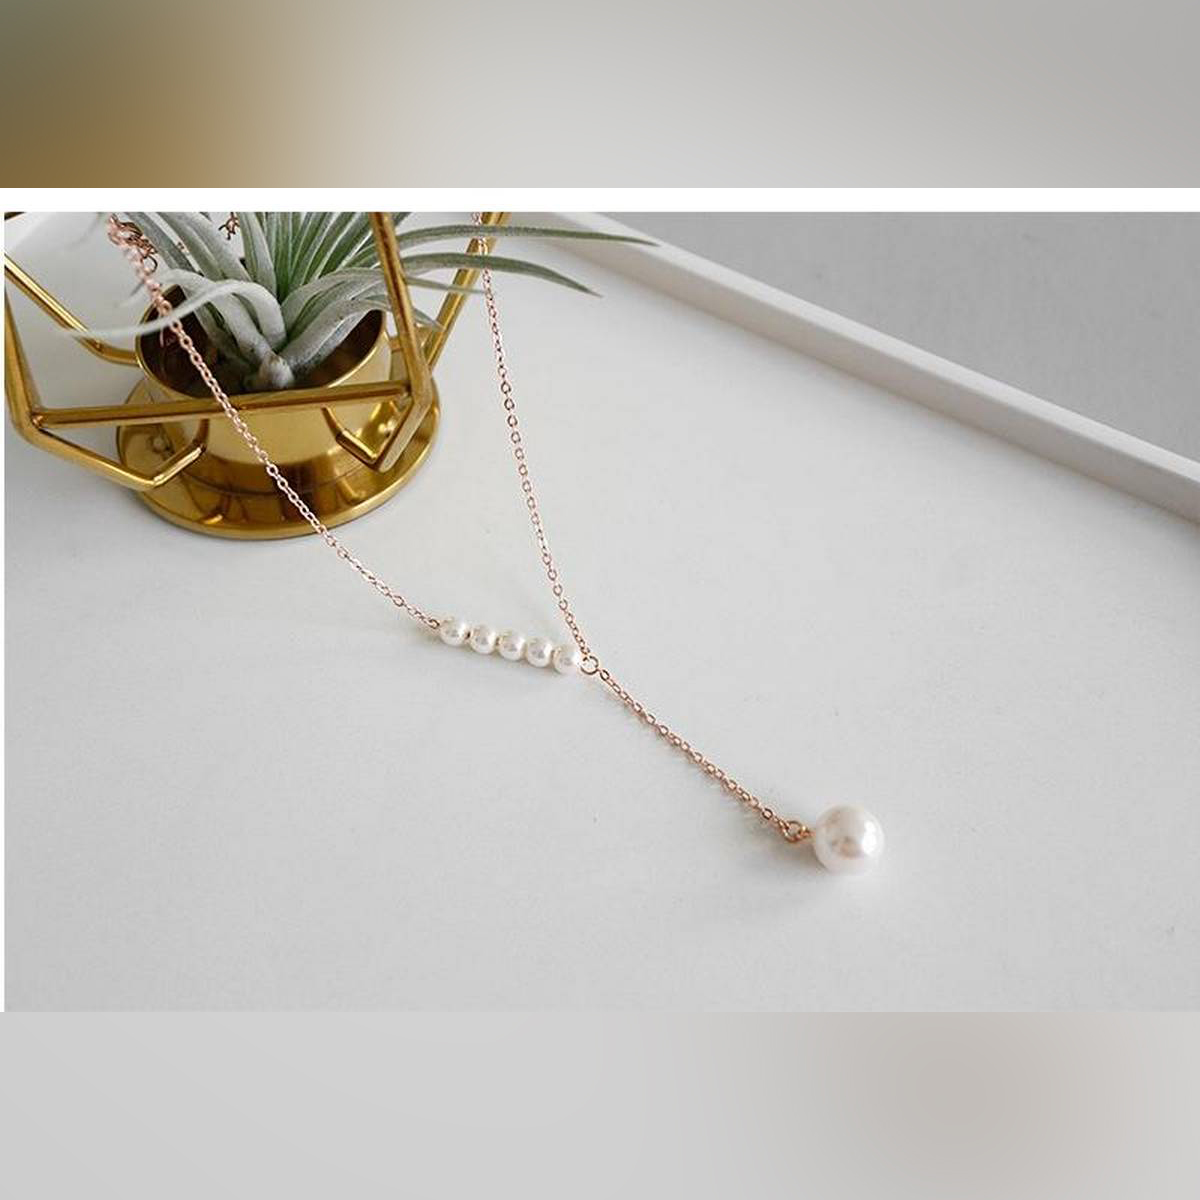 New Stylish Pearls Clavicle Pendant Necklace For Women - New Arrivals